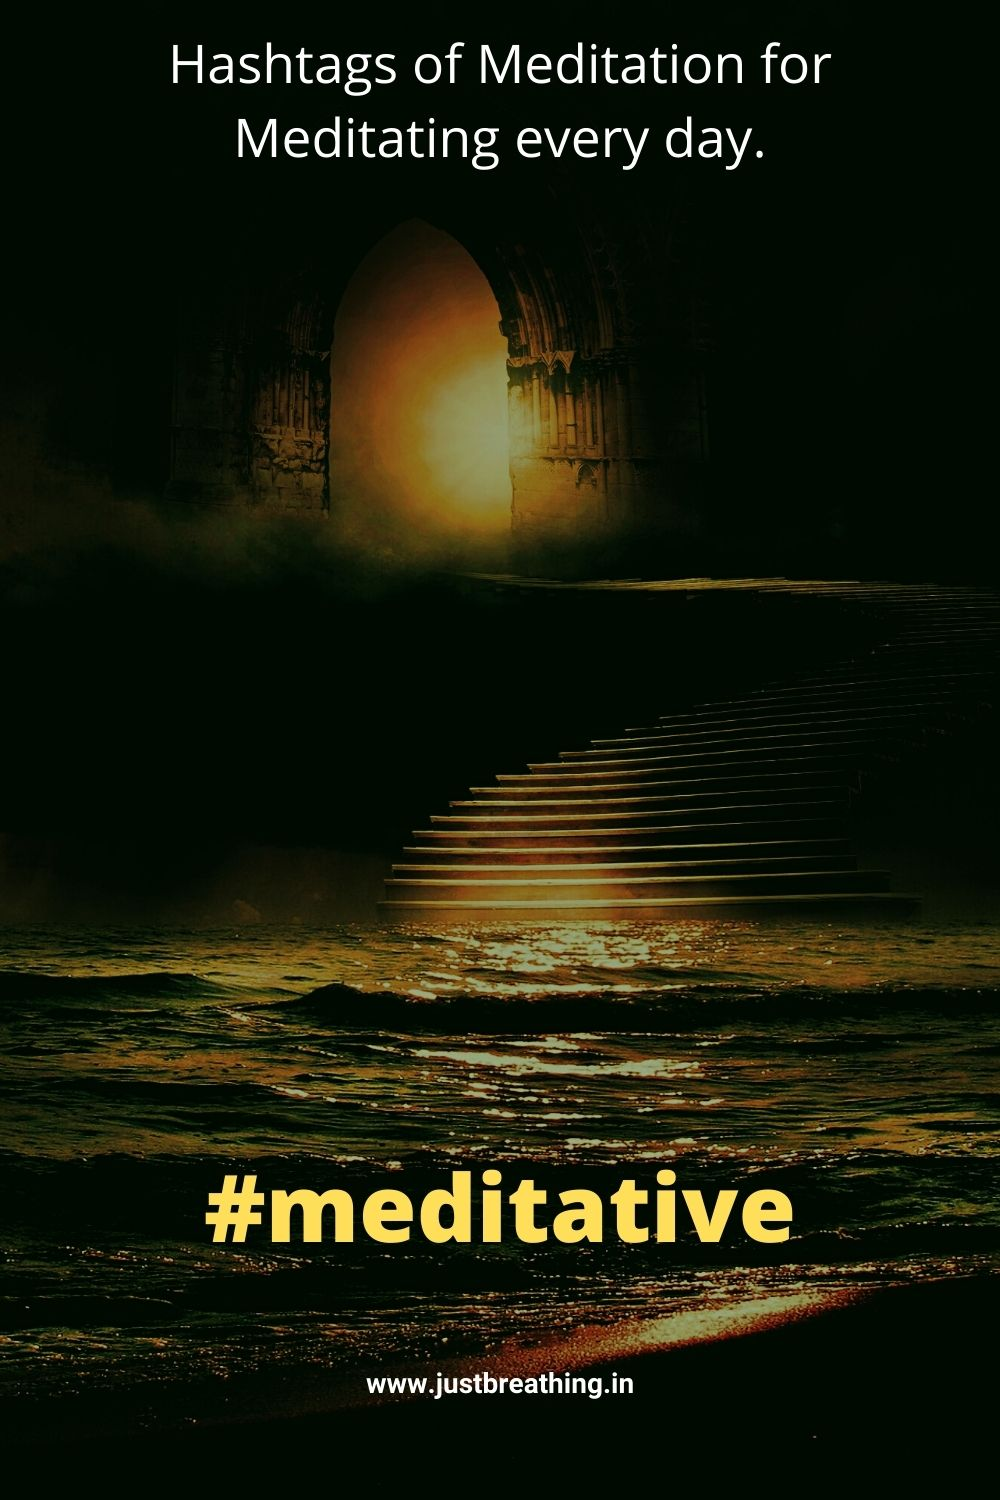 Best meditative hashtags for Instagram Hashtags of meditation for meditating every day.